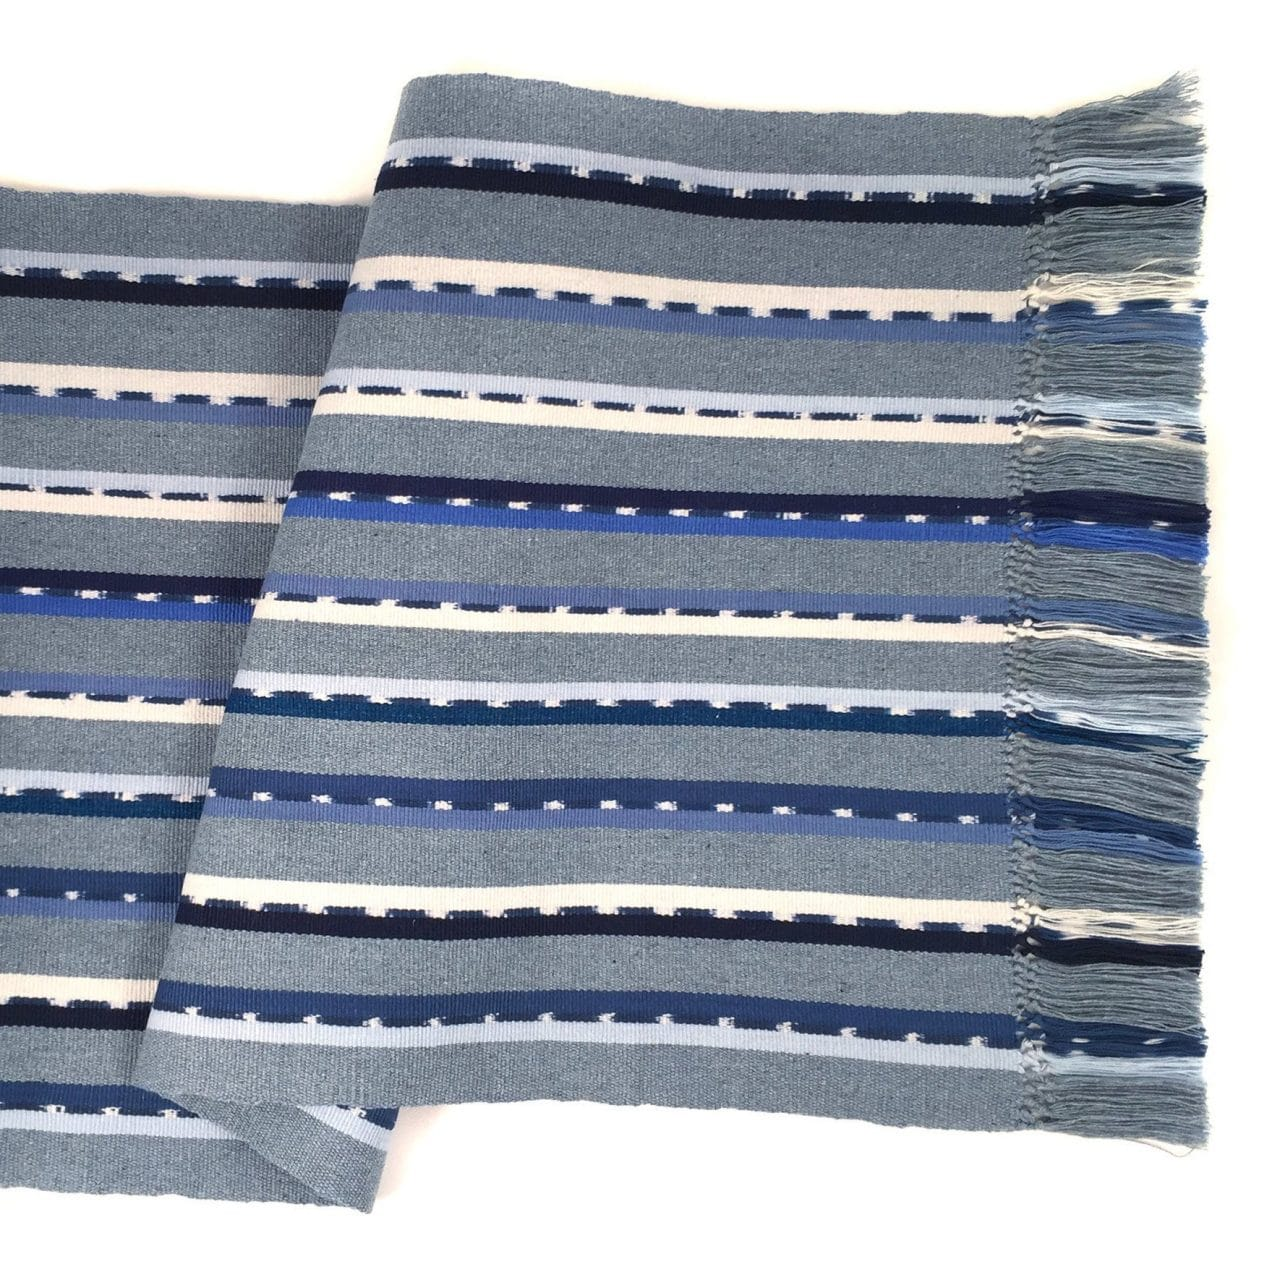 Denim Solola Table Runner